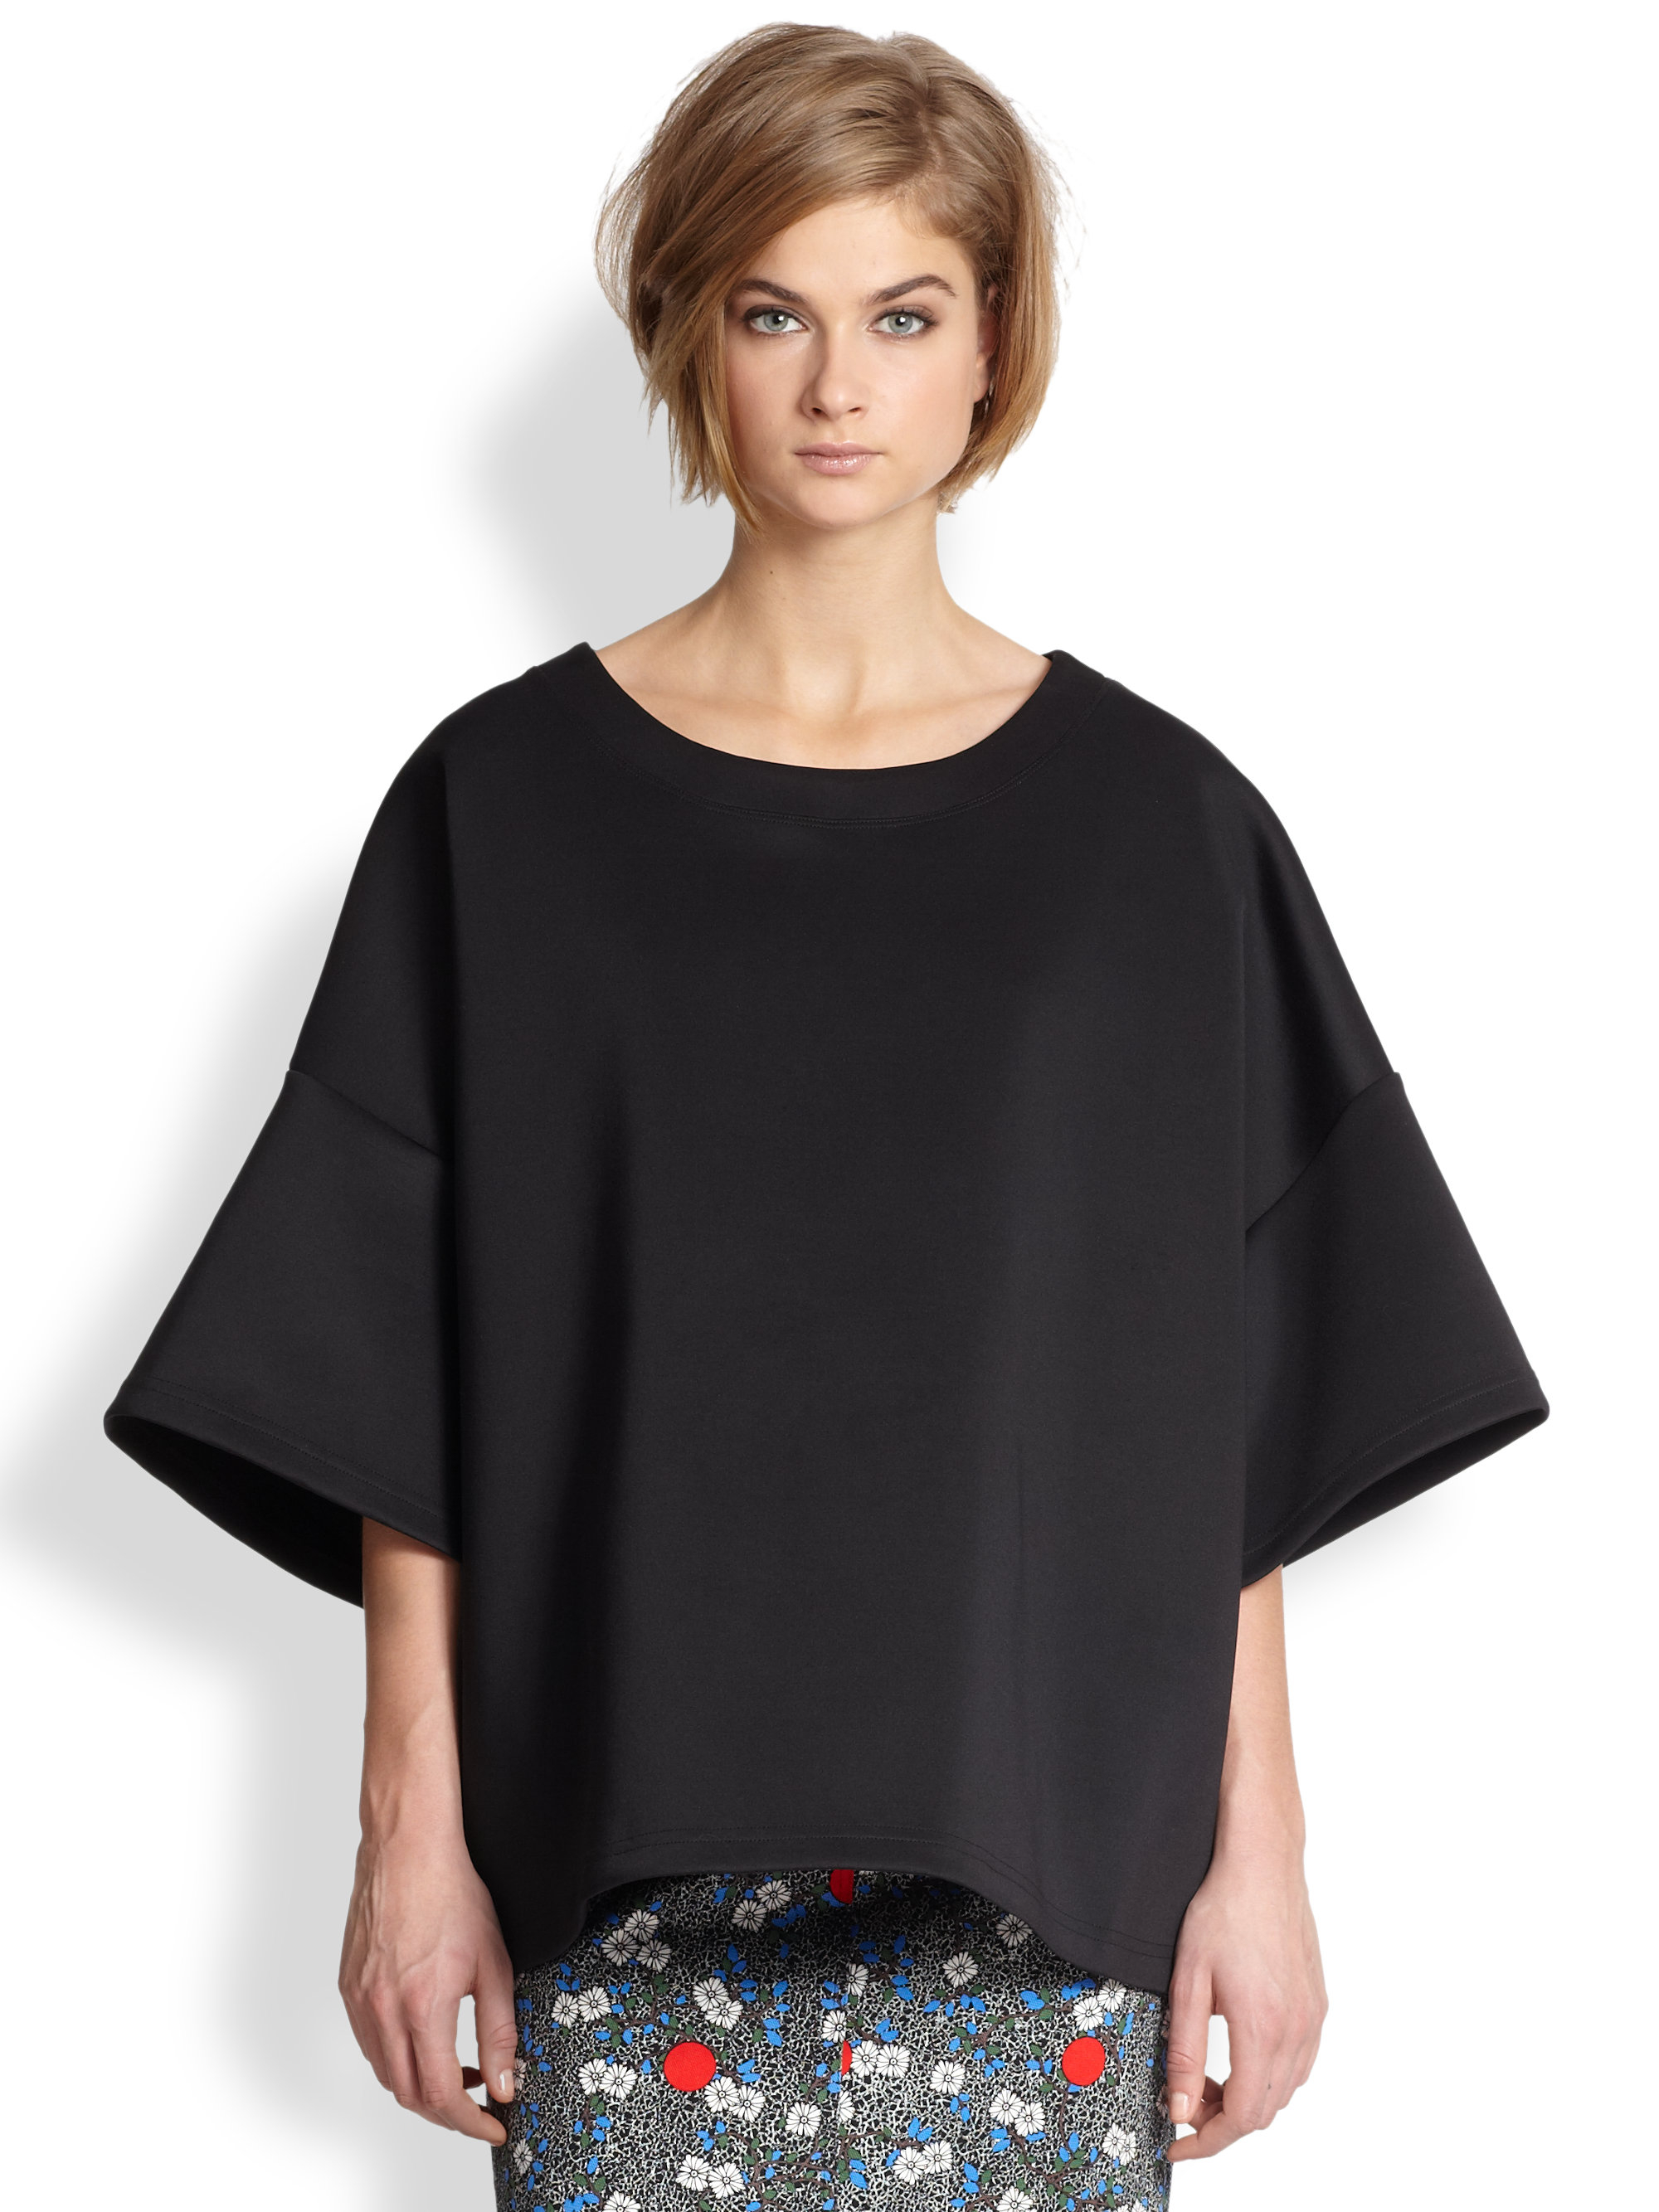 Vivienne Westwood T Shirt Lyst Opening Ceremony Oversized Dropped Shoulder